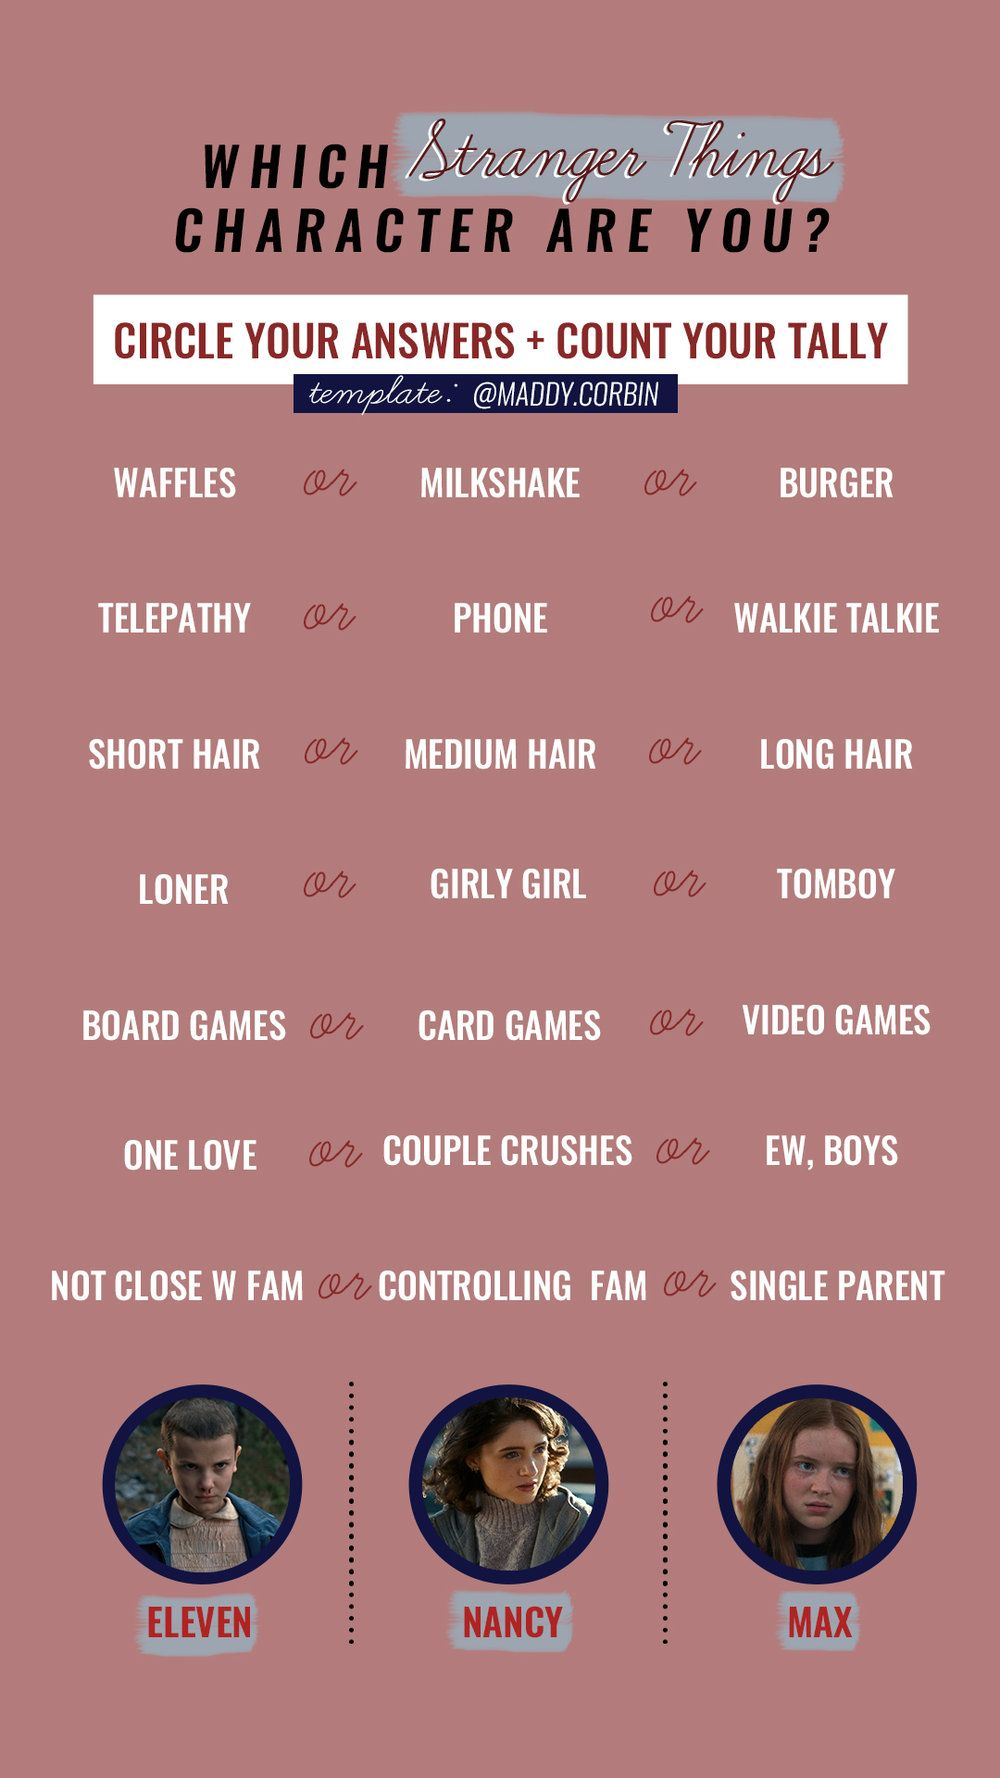 Instagram Story Template By Maddy Corbin Stranger Things Which Character Are You More On Maddyco Stranger Things Quote Stranger Things Stranger Things Quiz